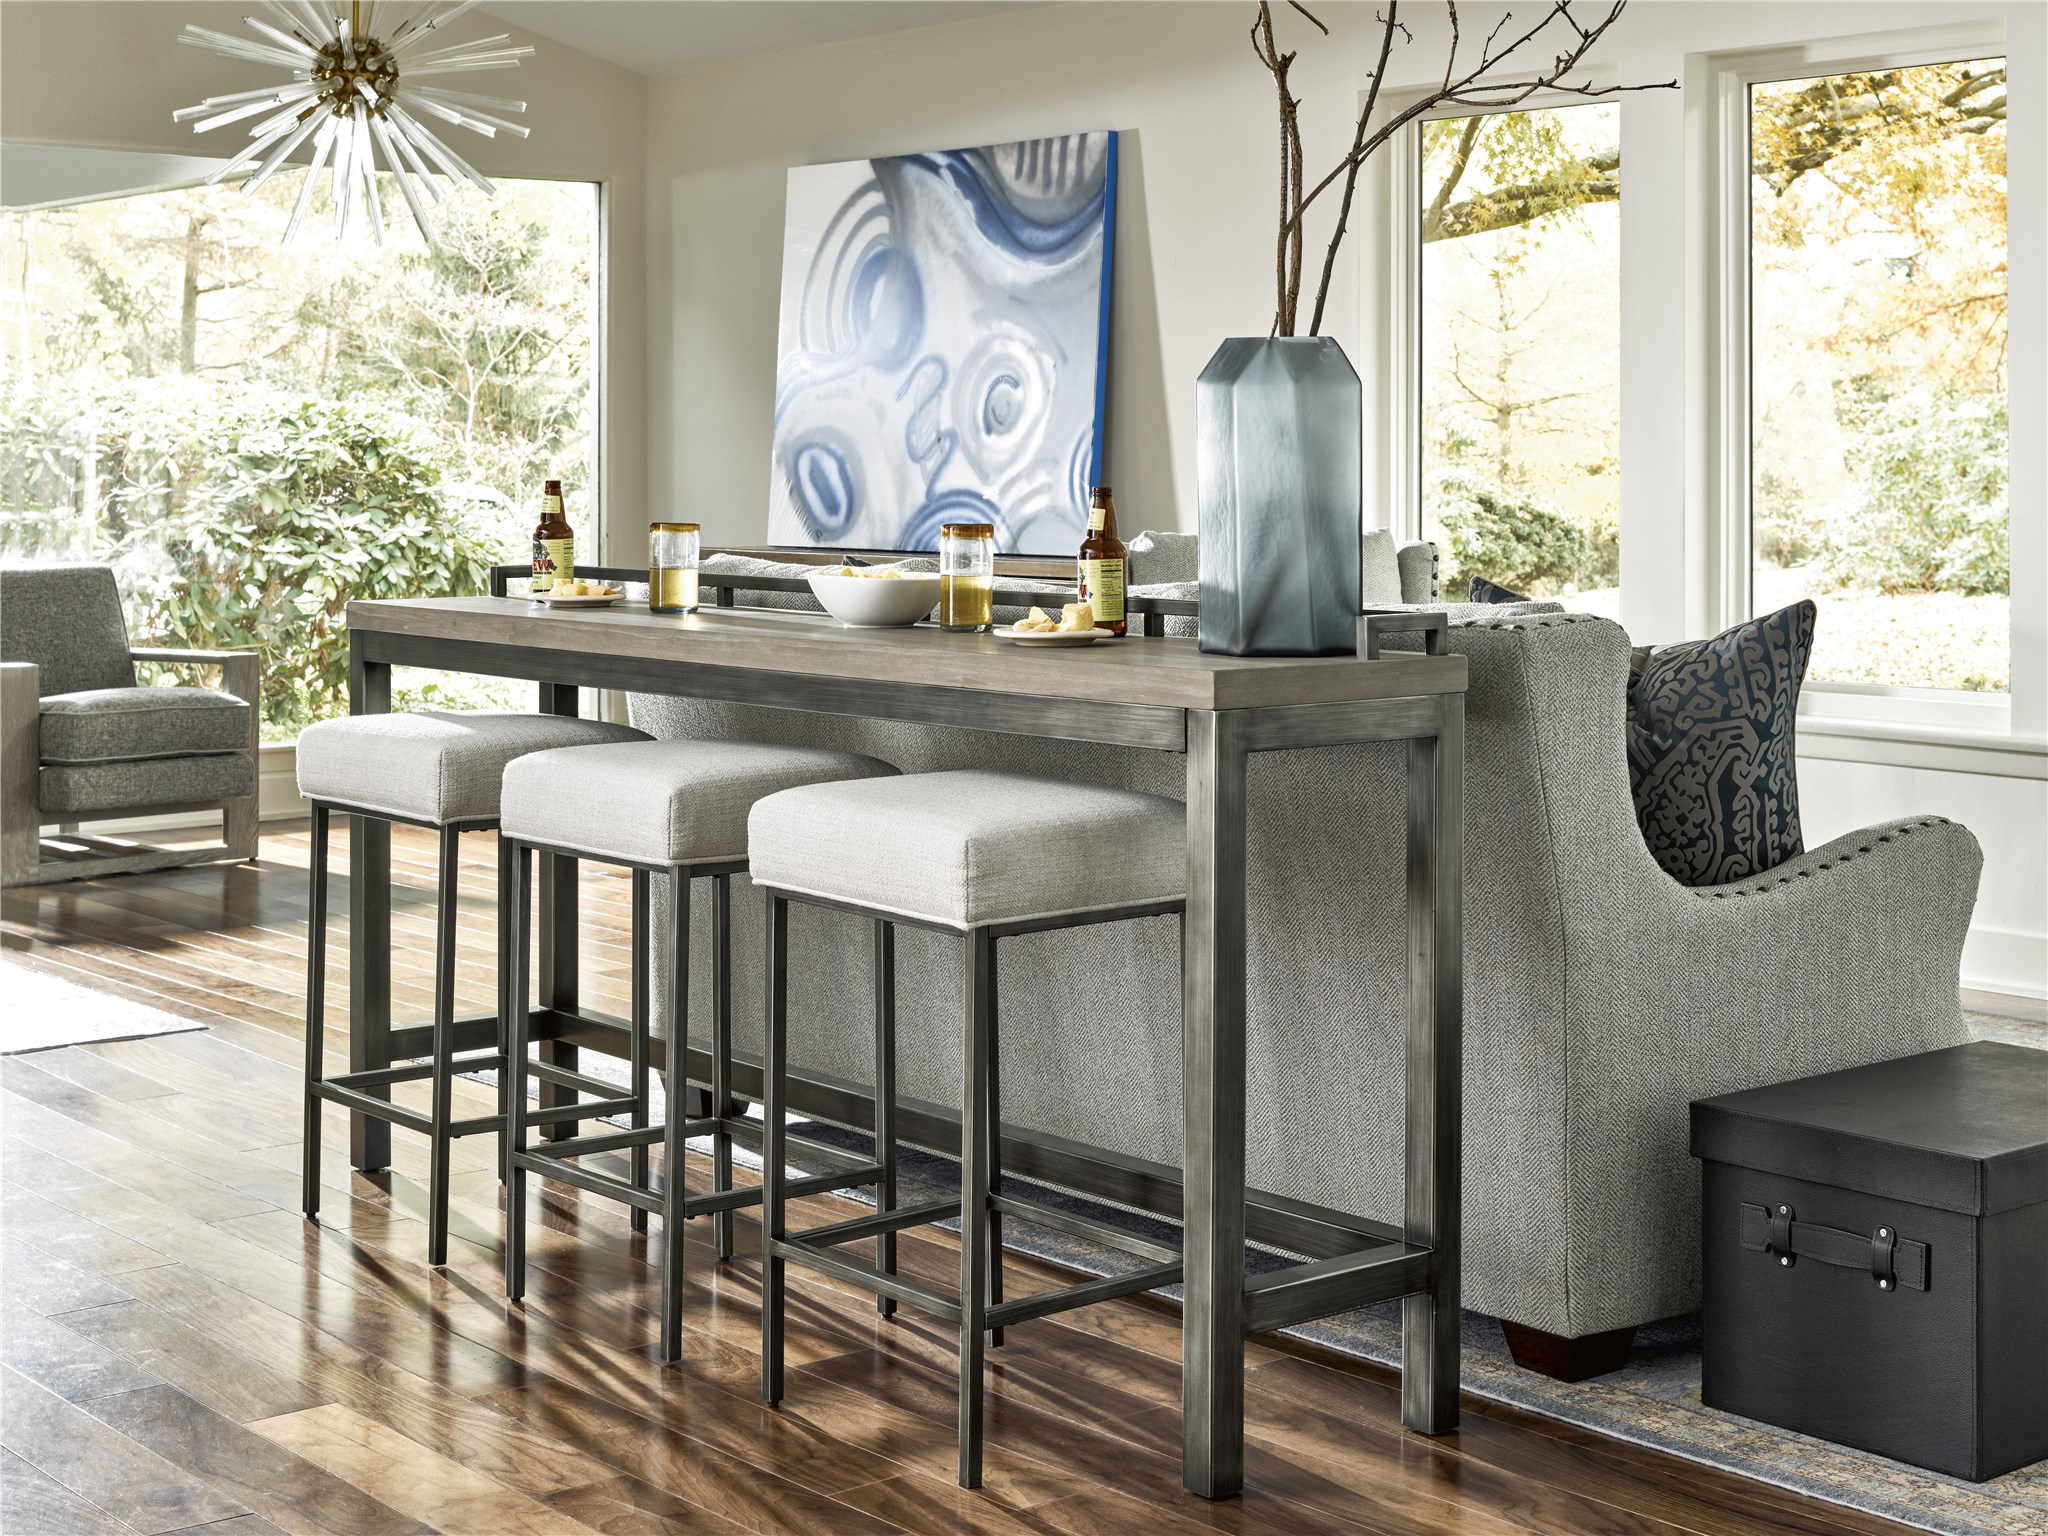 Placing a simple Parsons-style counter height table with tucked-away stools at the back of a couch can add two to three additional seats, while serving as a sofa table or even desk when not in use for dining.